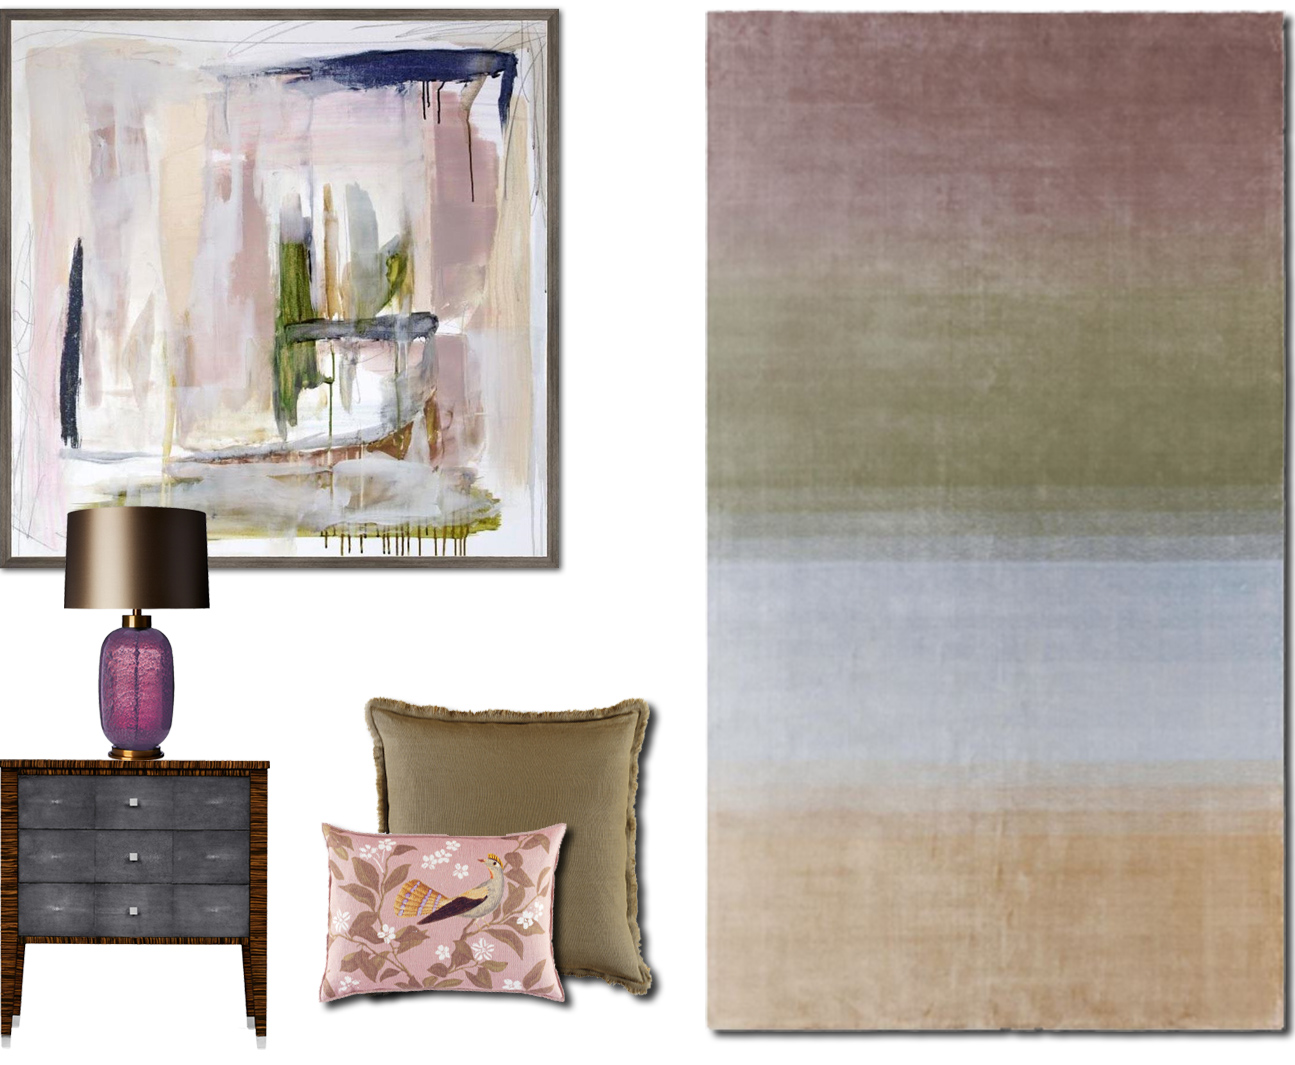 There is a strong move away from grey and a move to a softer, more pastel colour palette in interiors. We are seeing easy to live with hues of blush, nude, baby blue and light coral. Here we have paired some of these pastel colours with khaki and soft olive with which gives an earthy & more grounded feel.